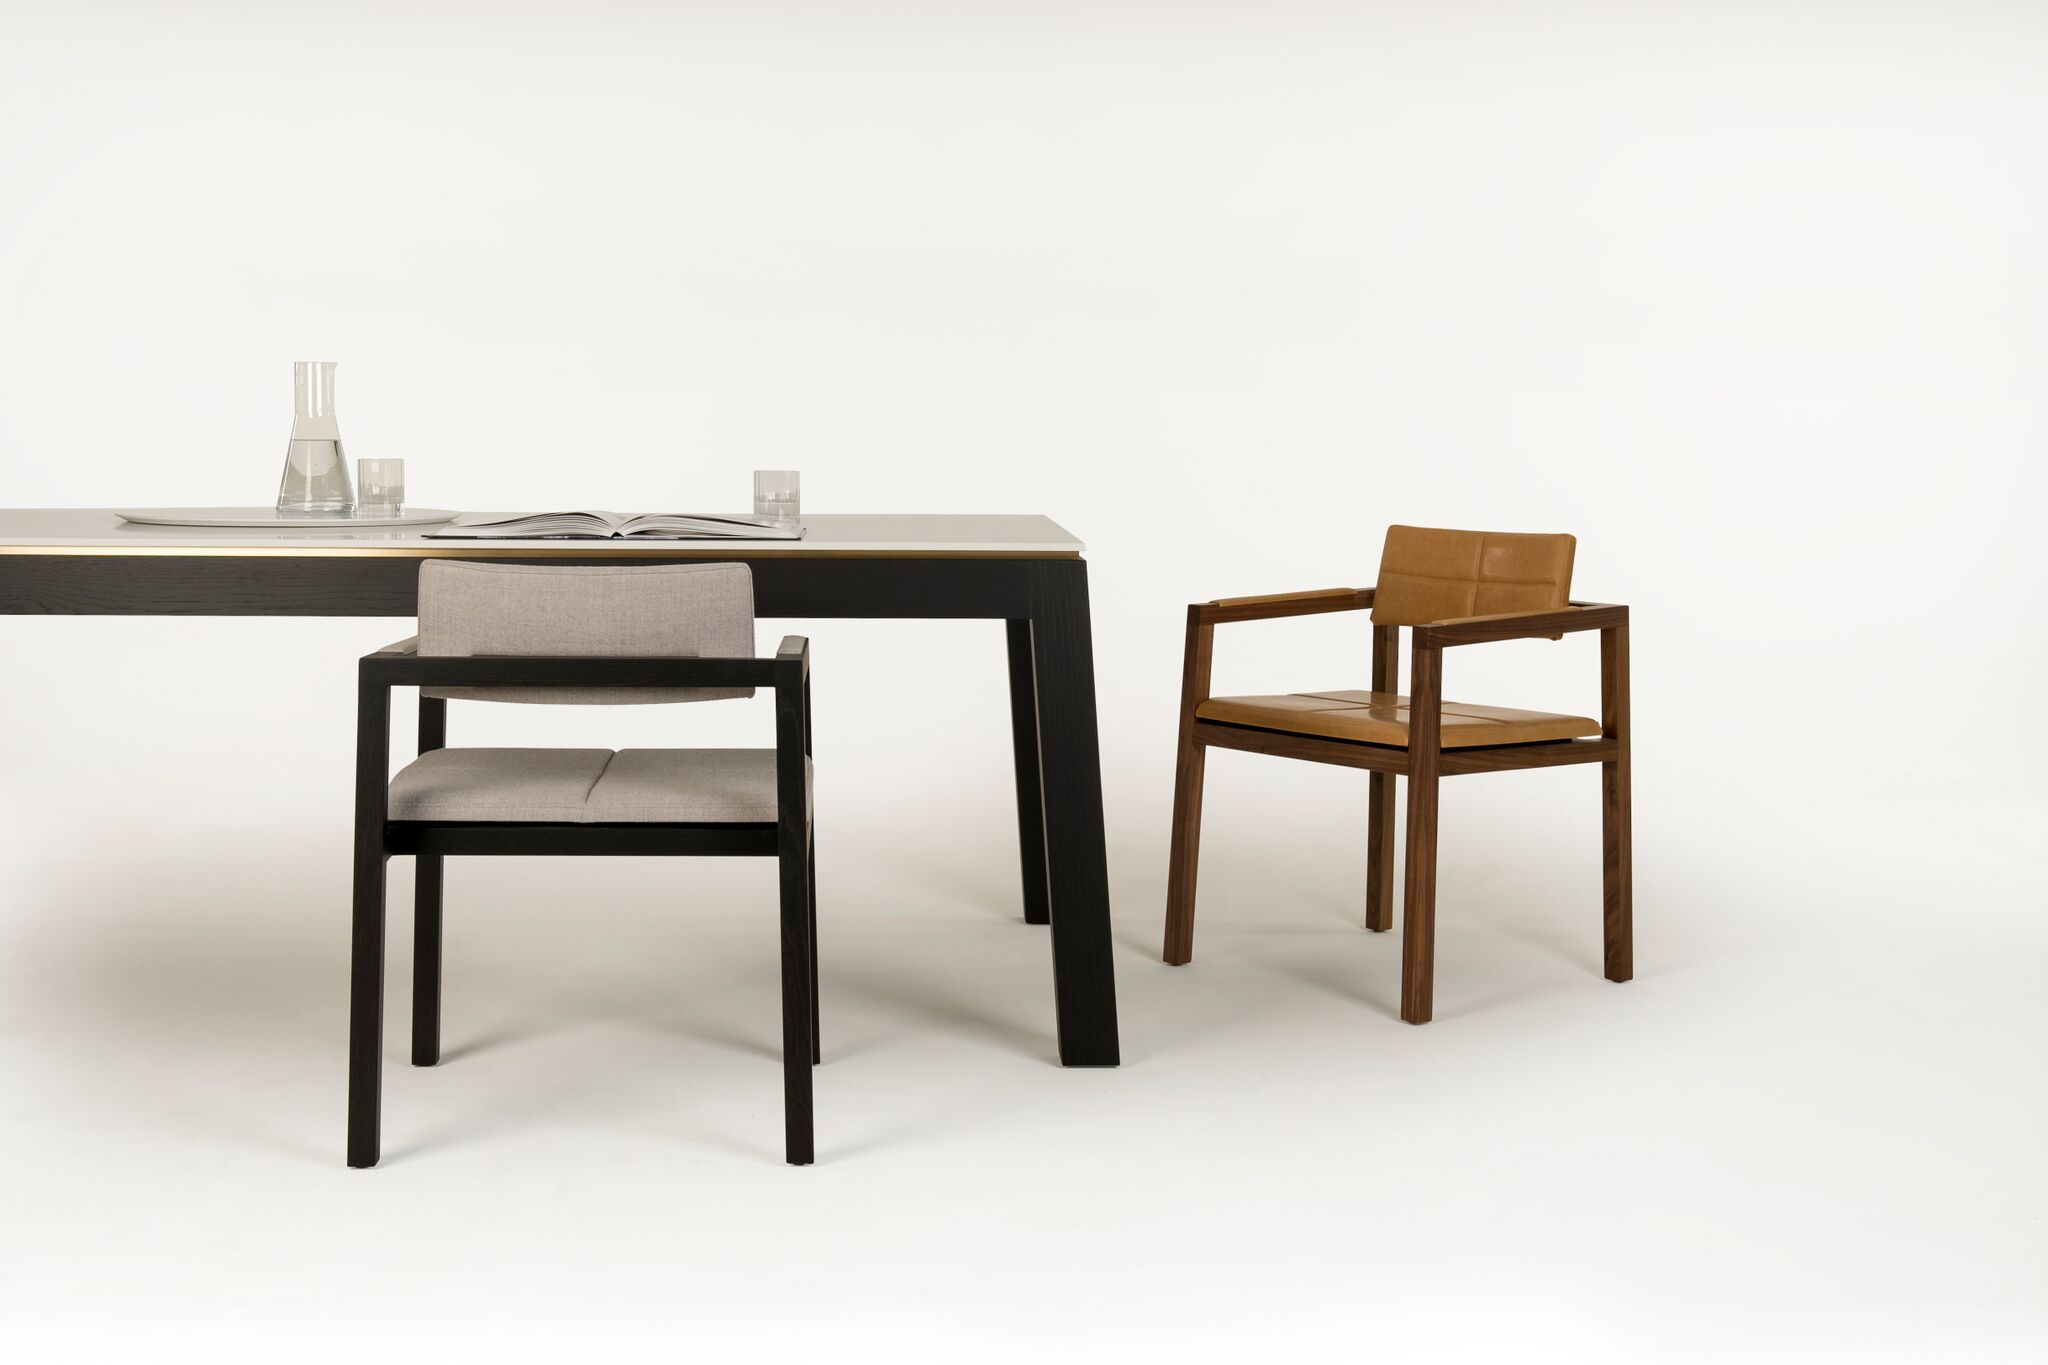 Gallery Of The Mila Table By Fraco Crea Local Australian Furniture Design Melbourne, Vic Image 4